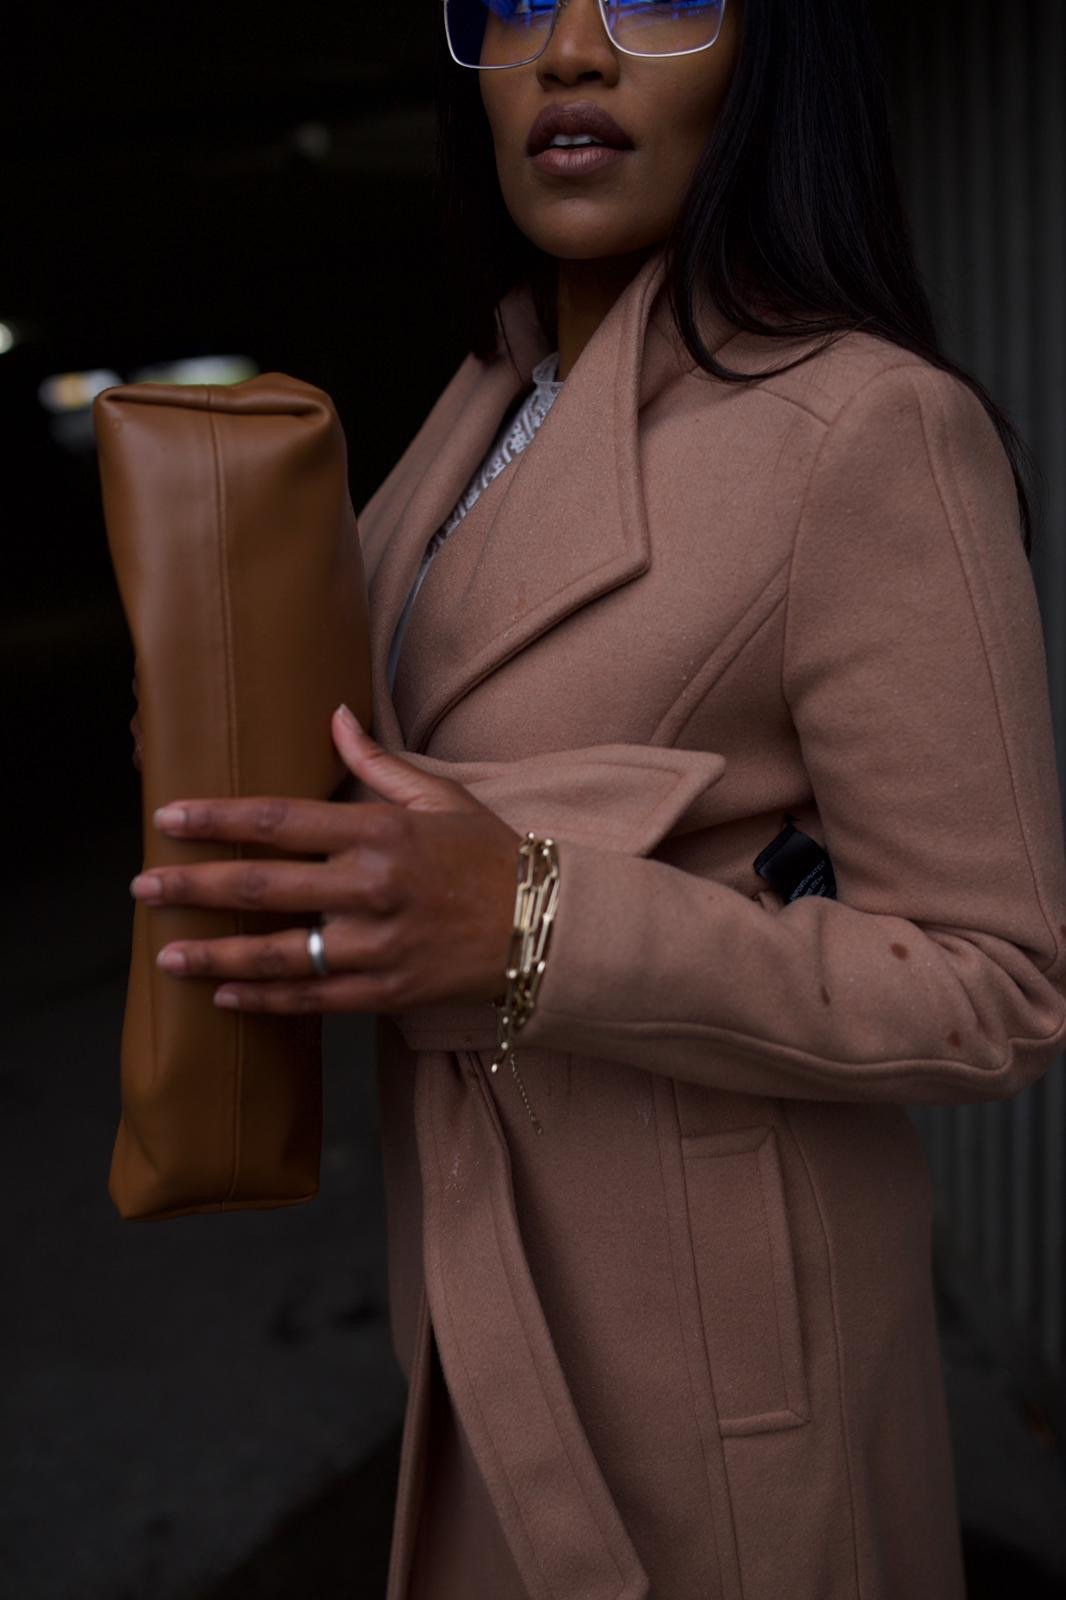 Camel Coat for Casual Outfit